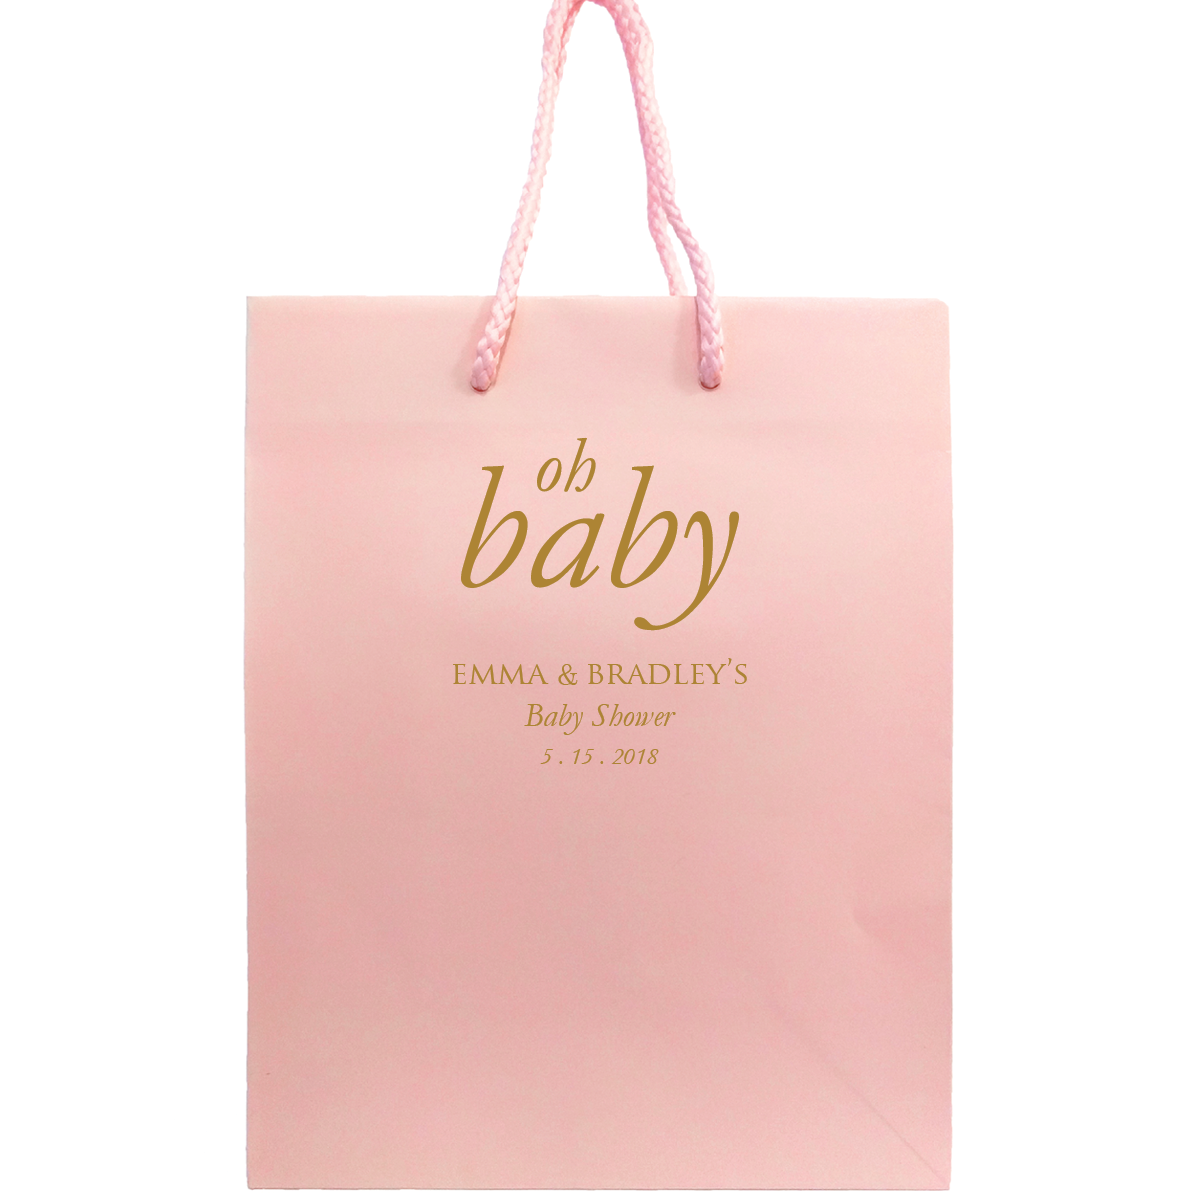 Oh baby bags personalized gift bag nora collection tea and becky oh baby bags personalized gift bag nora collection tea and becky negle Image collections